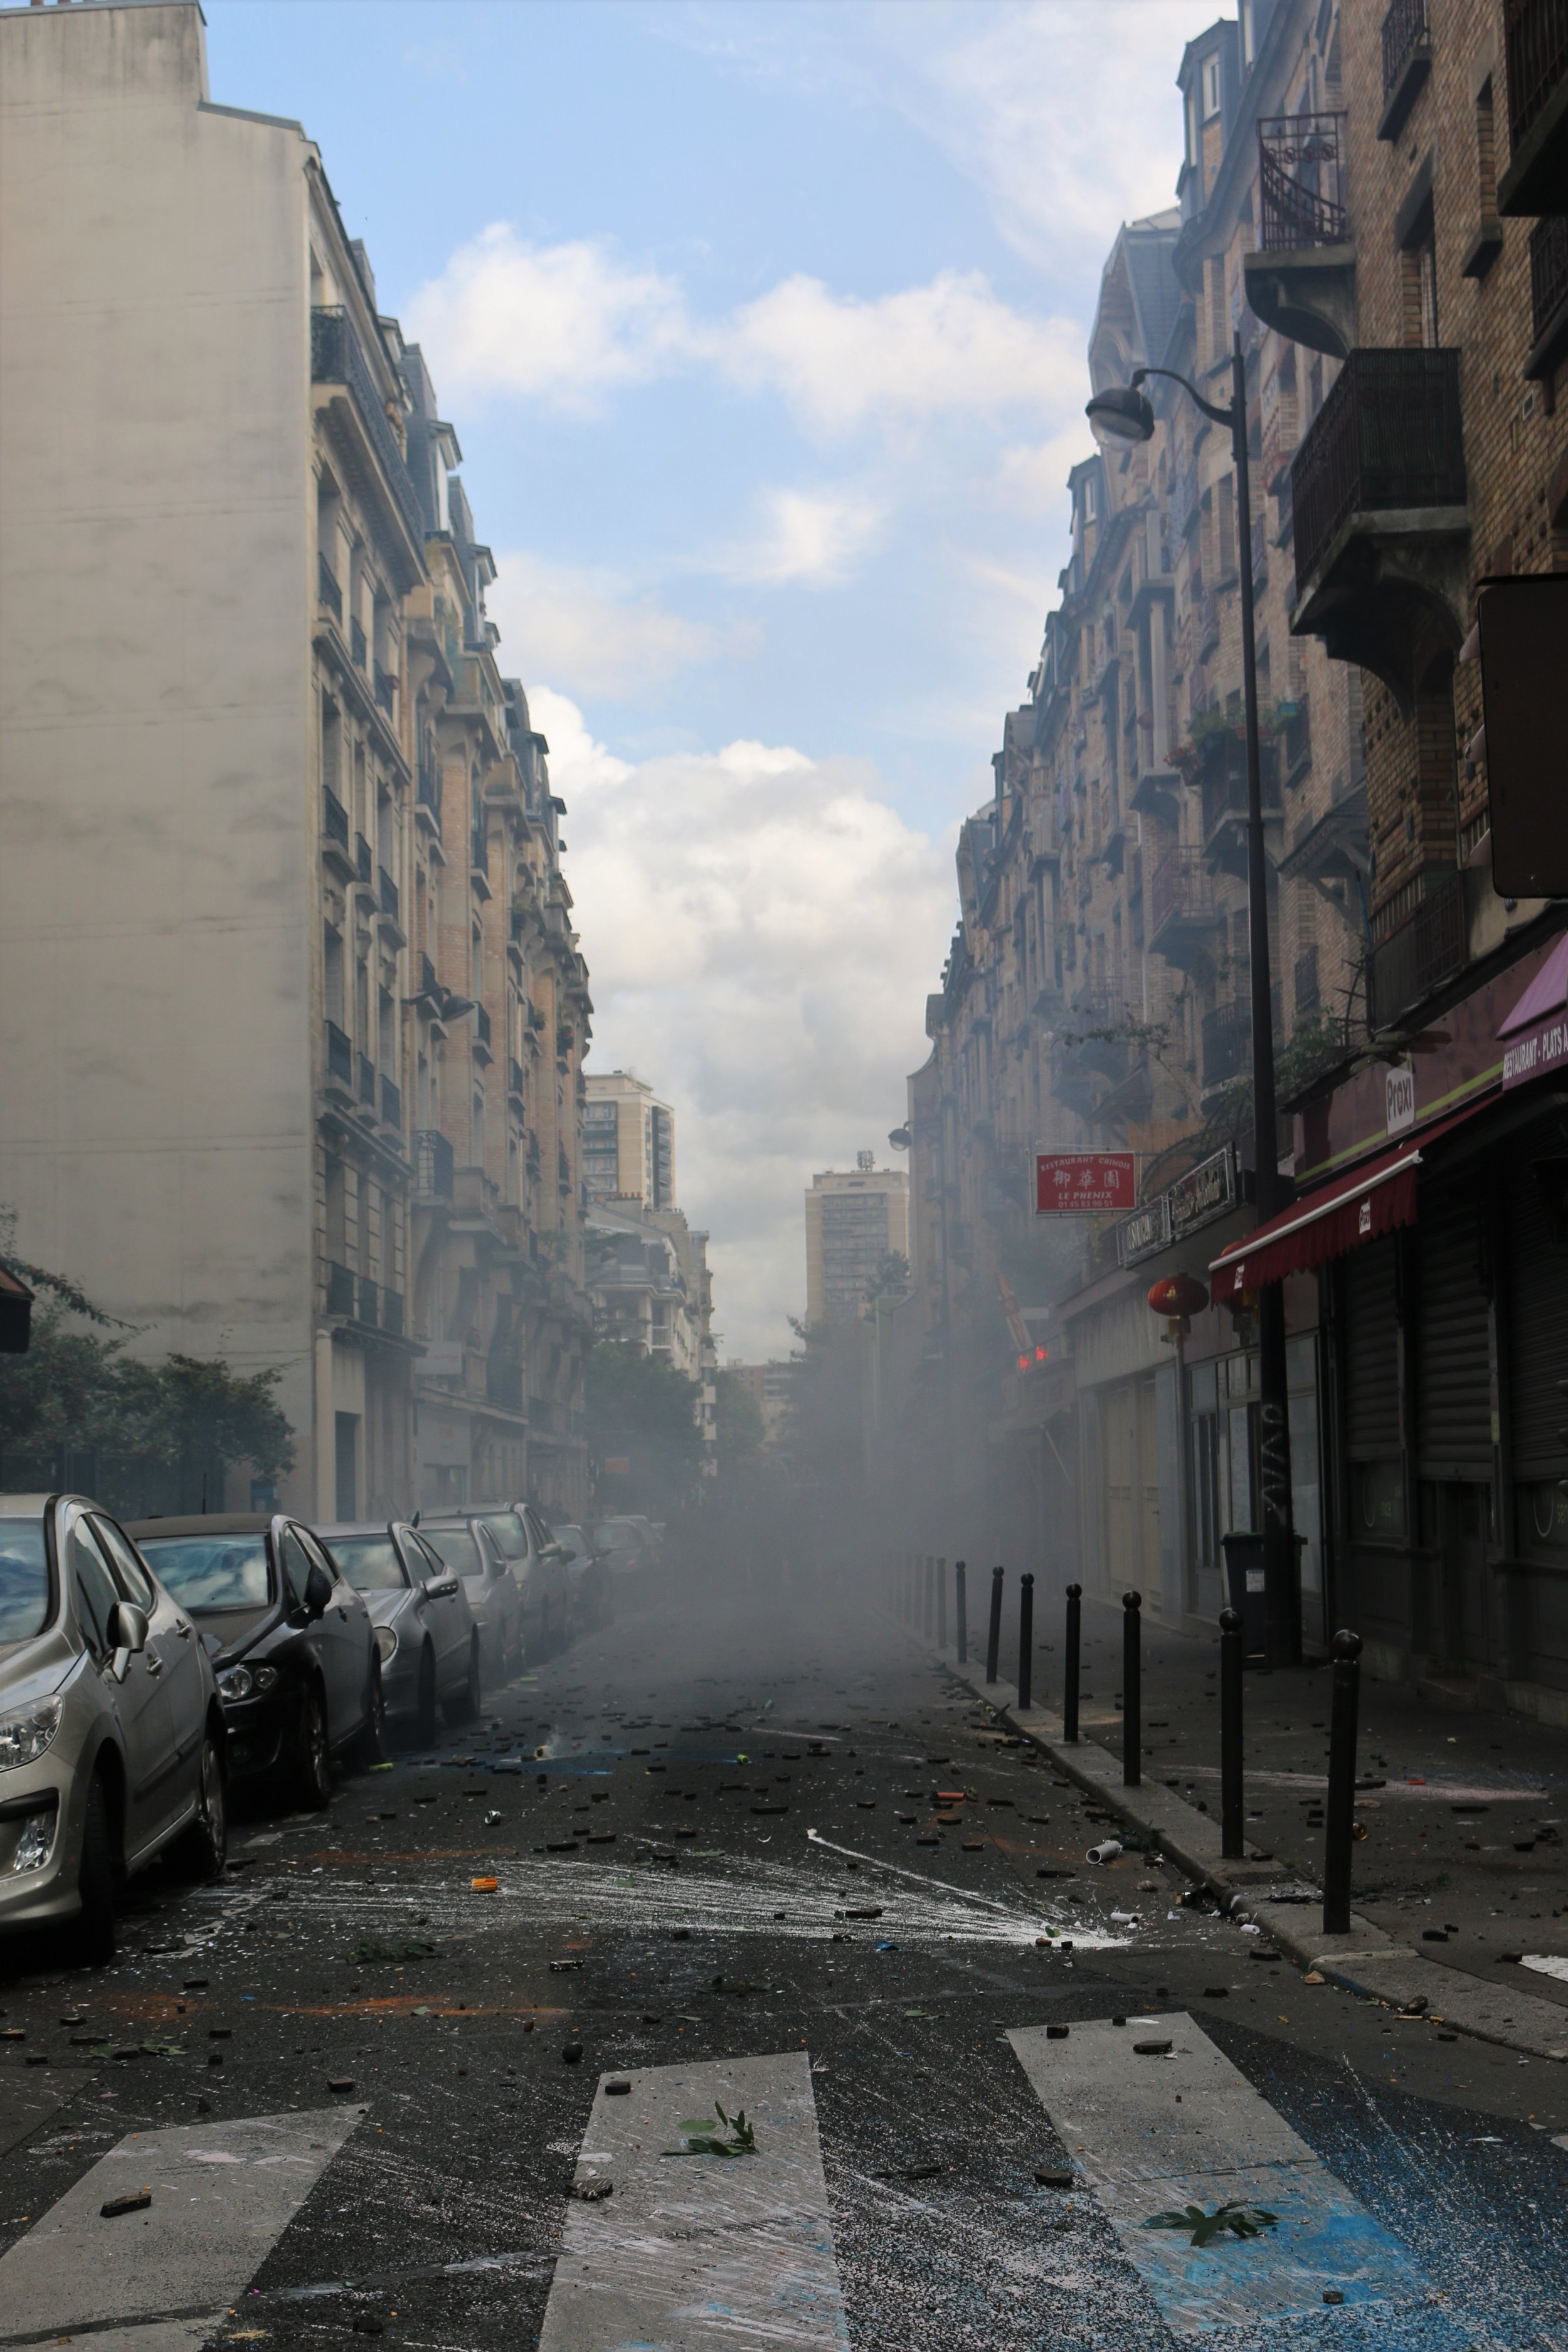 Paris, France. Police retreat in a haze of tear gas as they come under attack from protesters